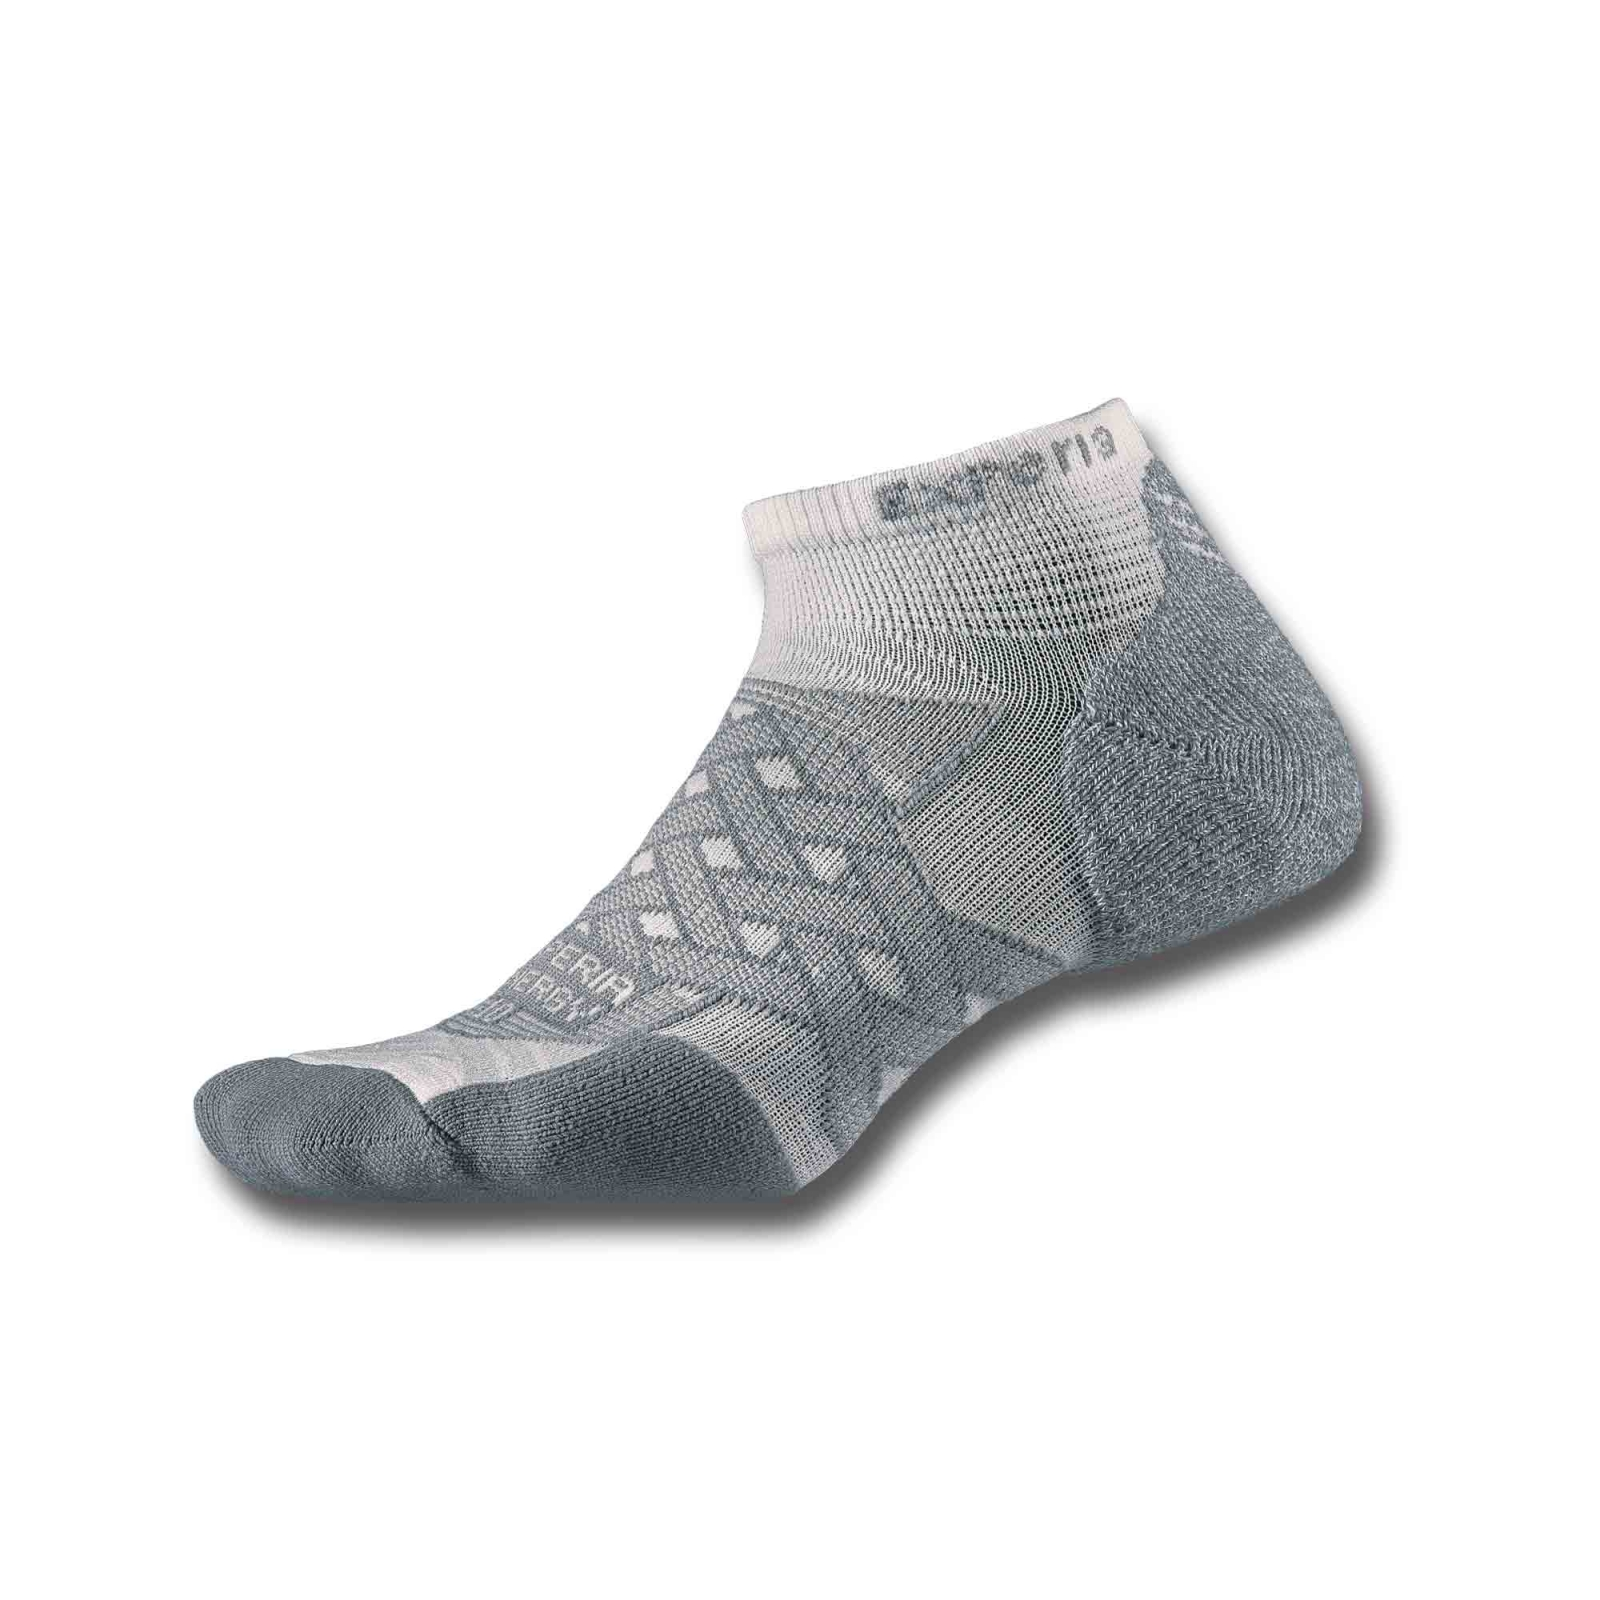 XECU Experia® Compression Socks Low Cut